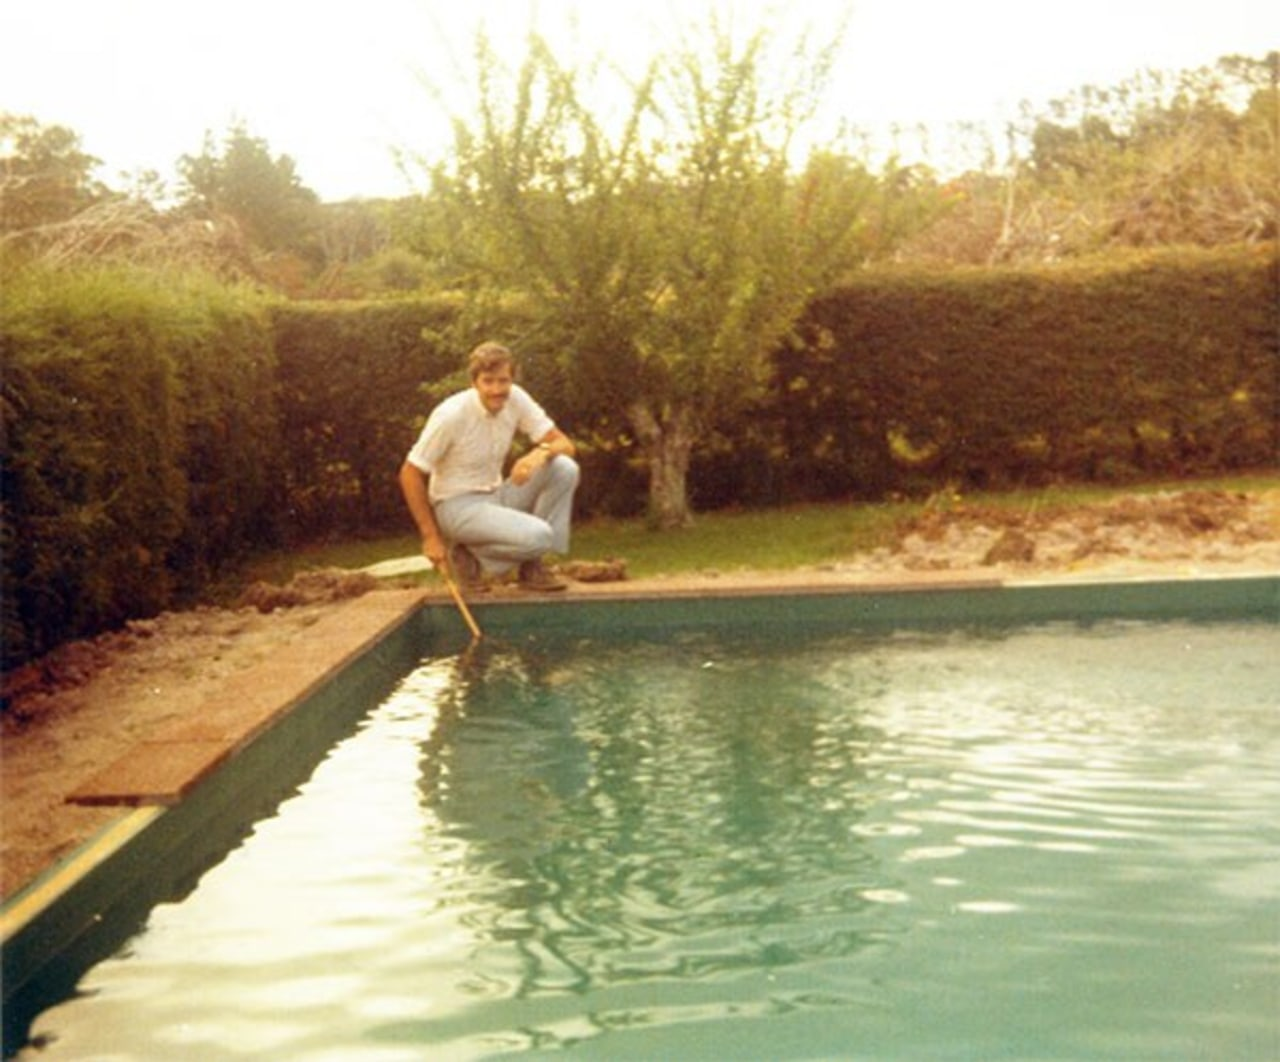 Cascade Pools' first New Zealand pool. That's Larry